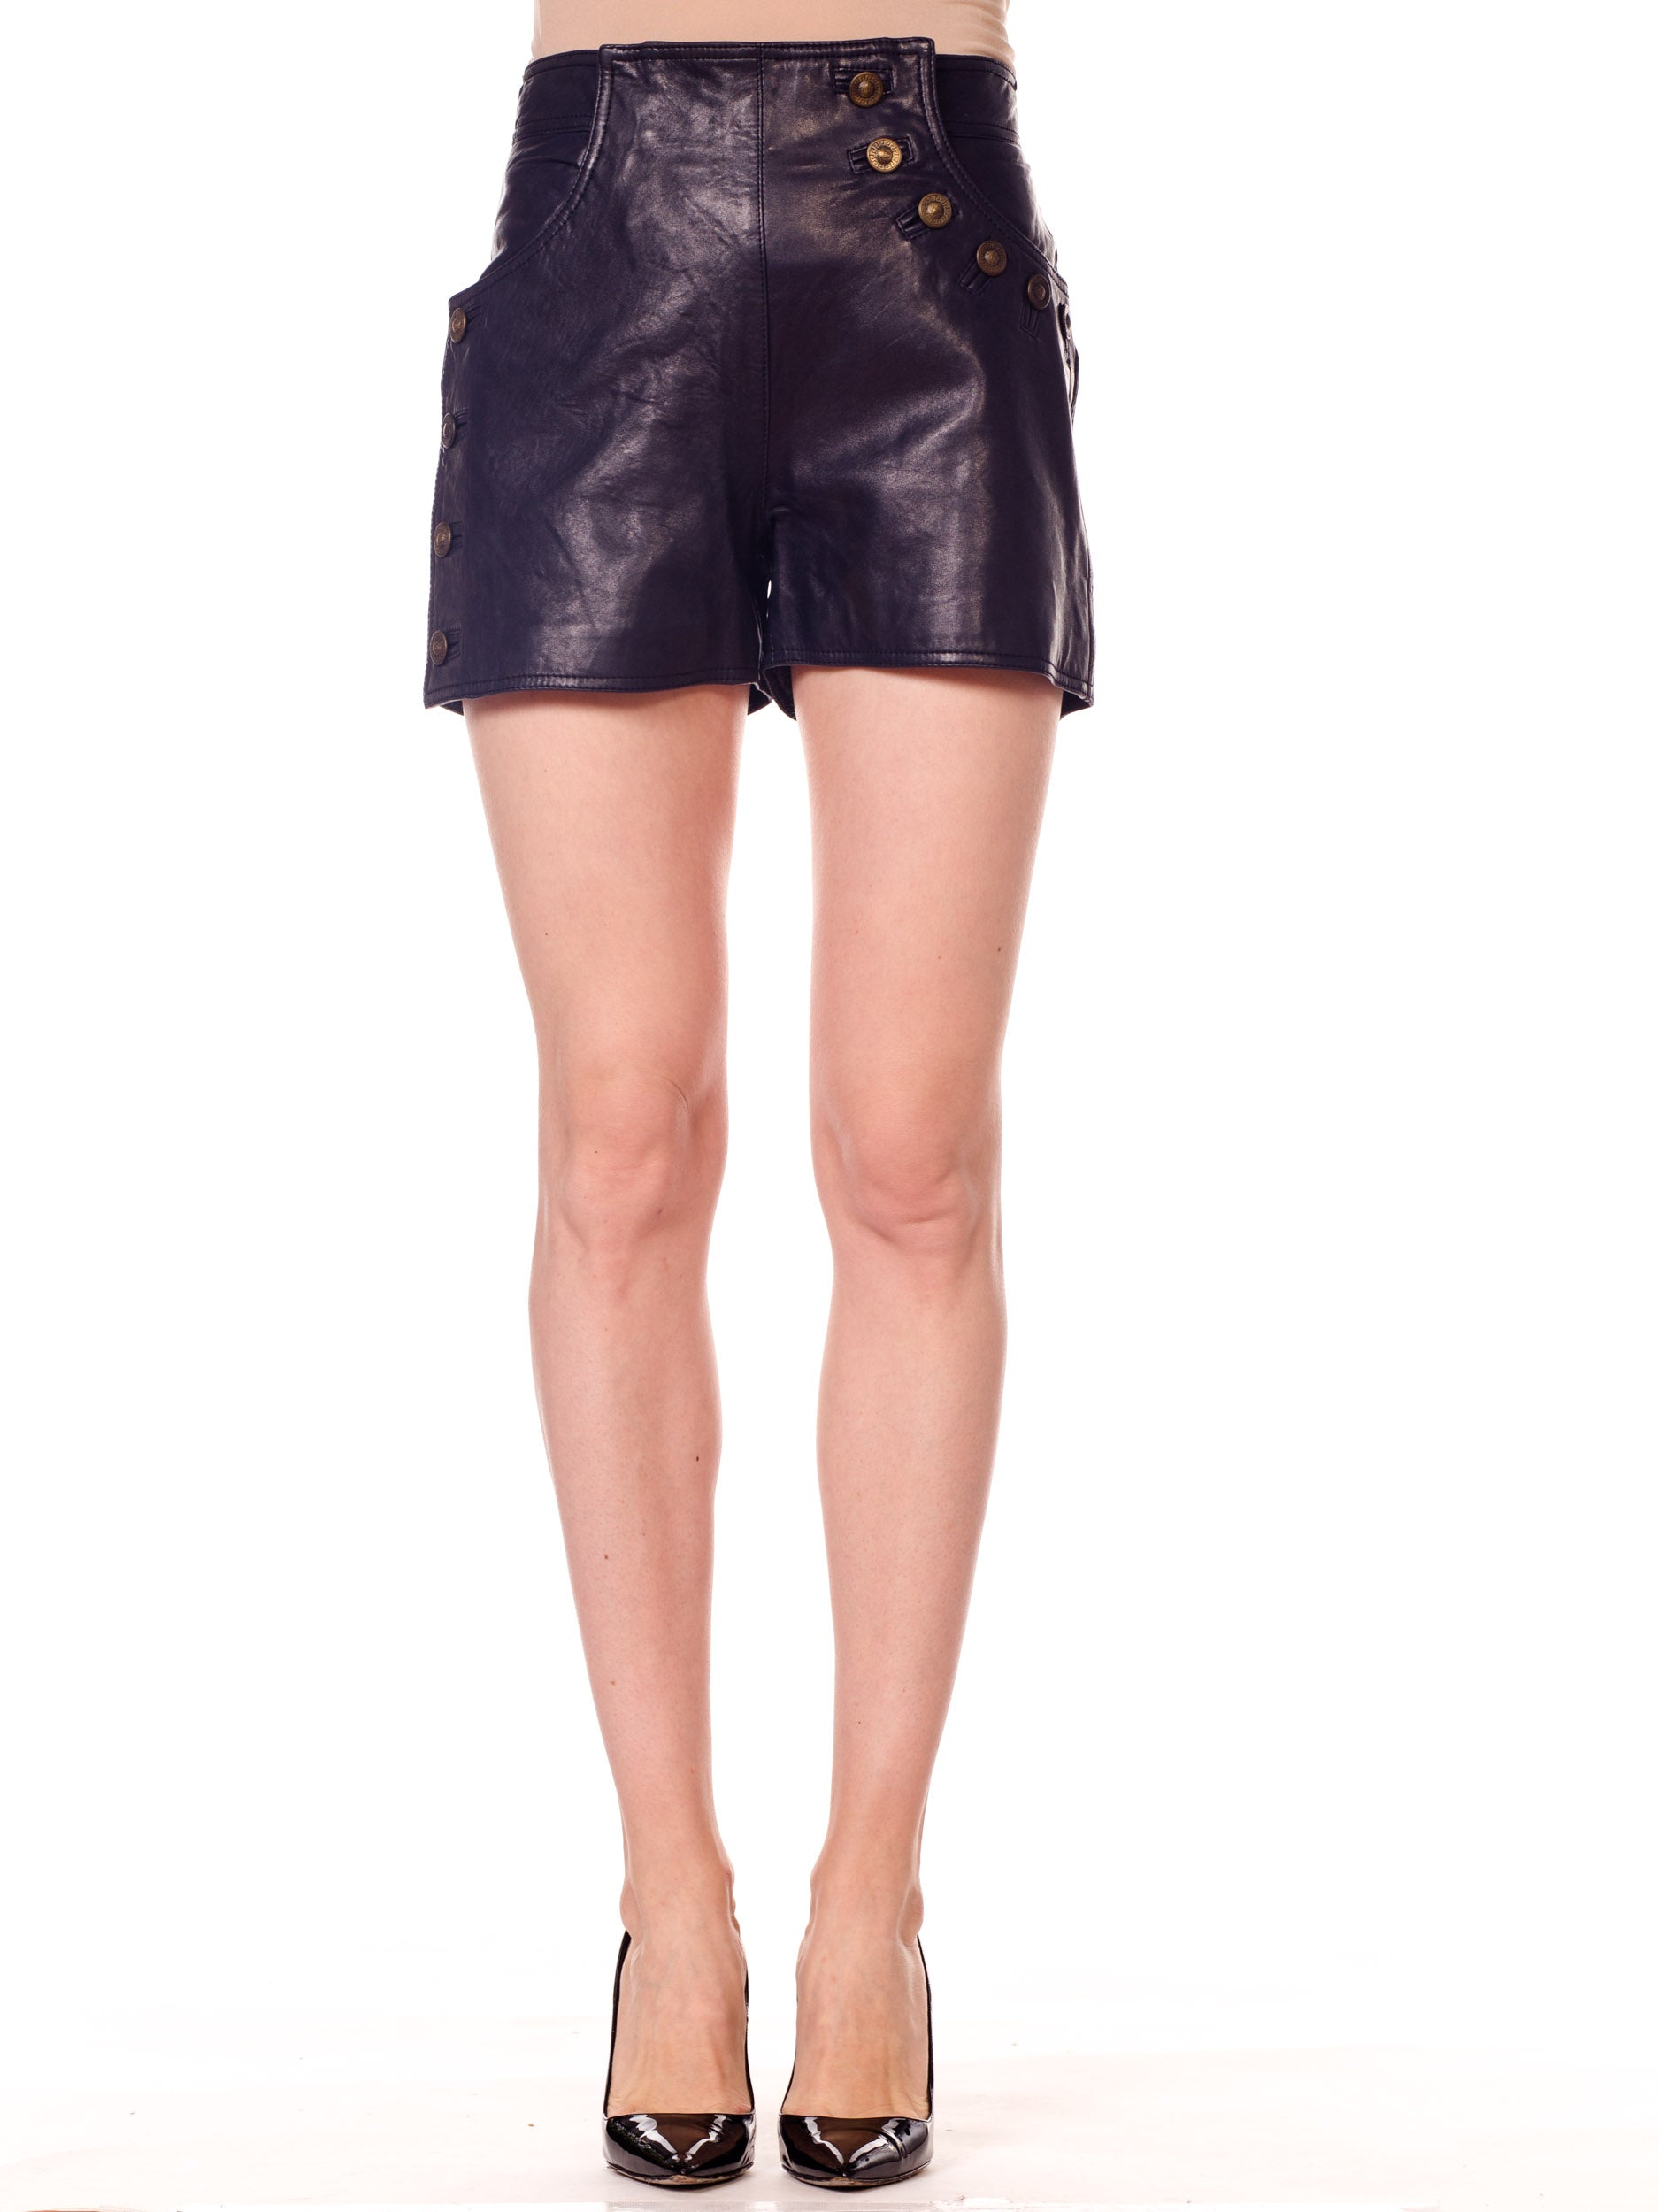 Gianni Versace Couture Leather Shorts with Button Detail